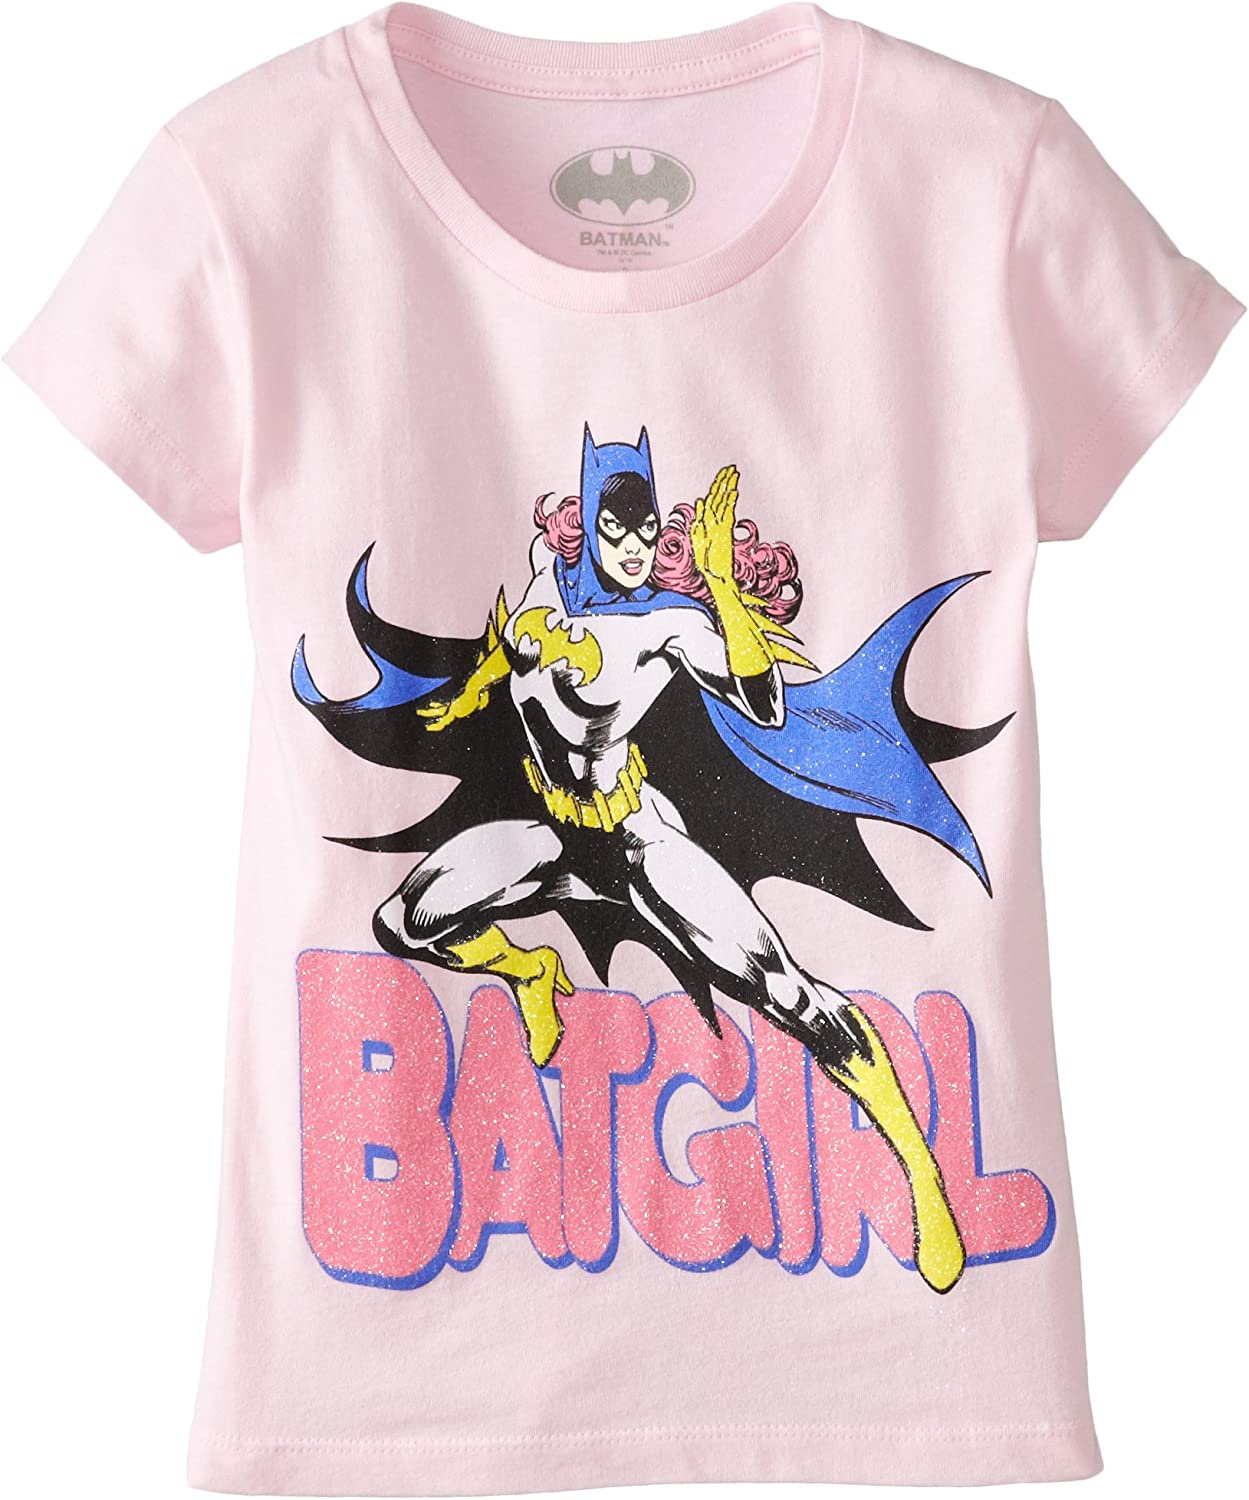 Youth DC Comics Batgirl Short-Sleeve T-Shirt